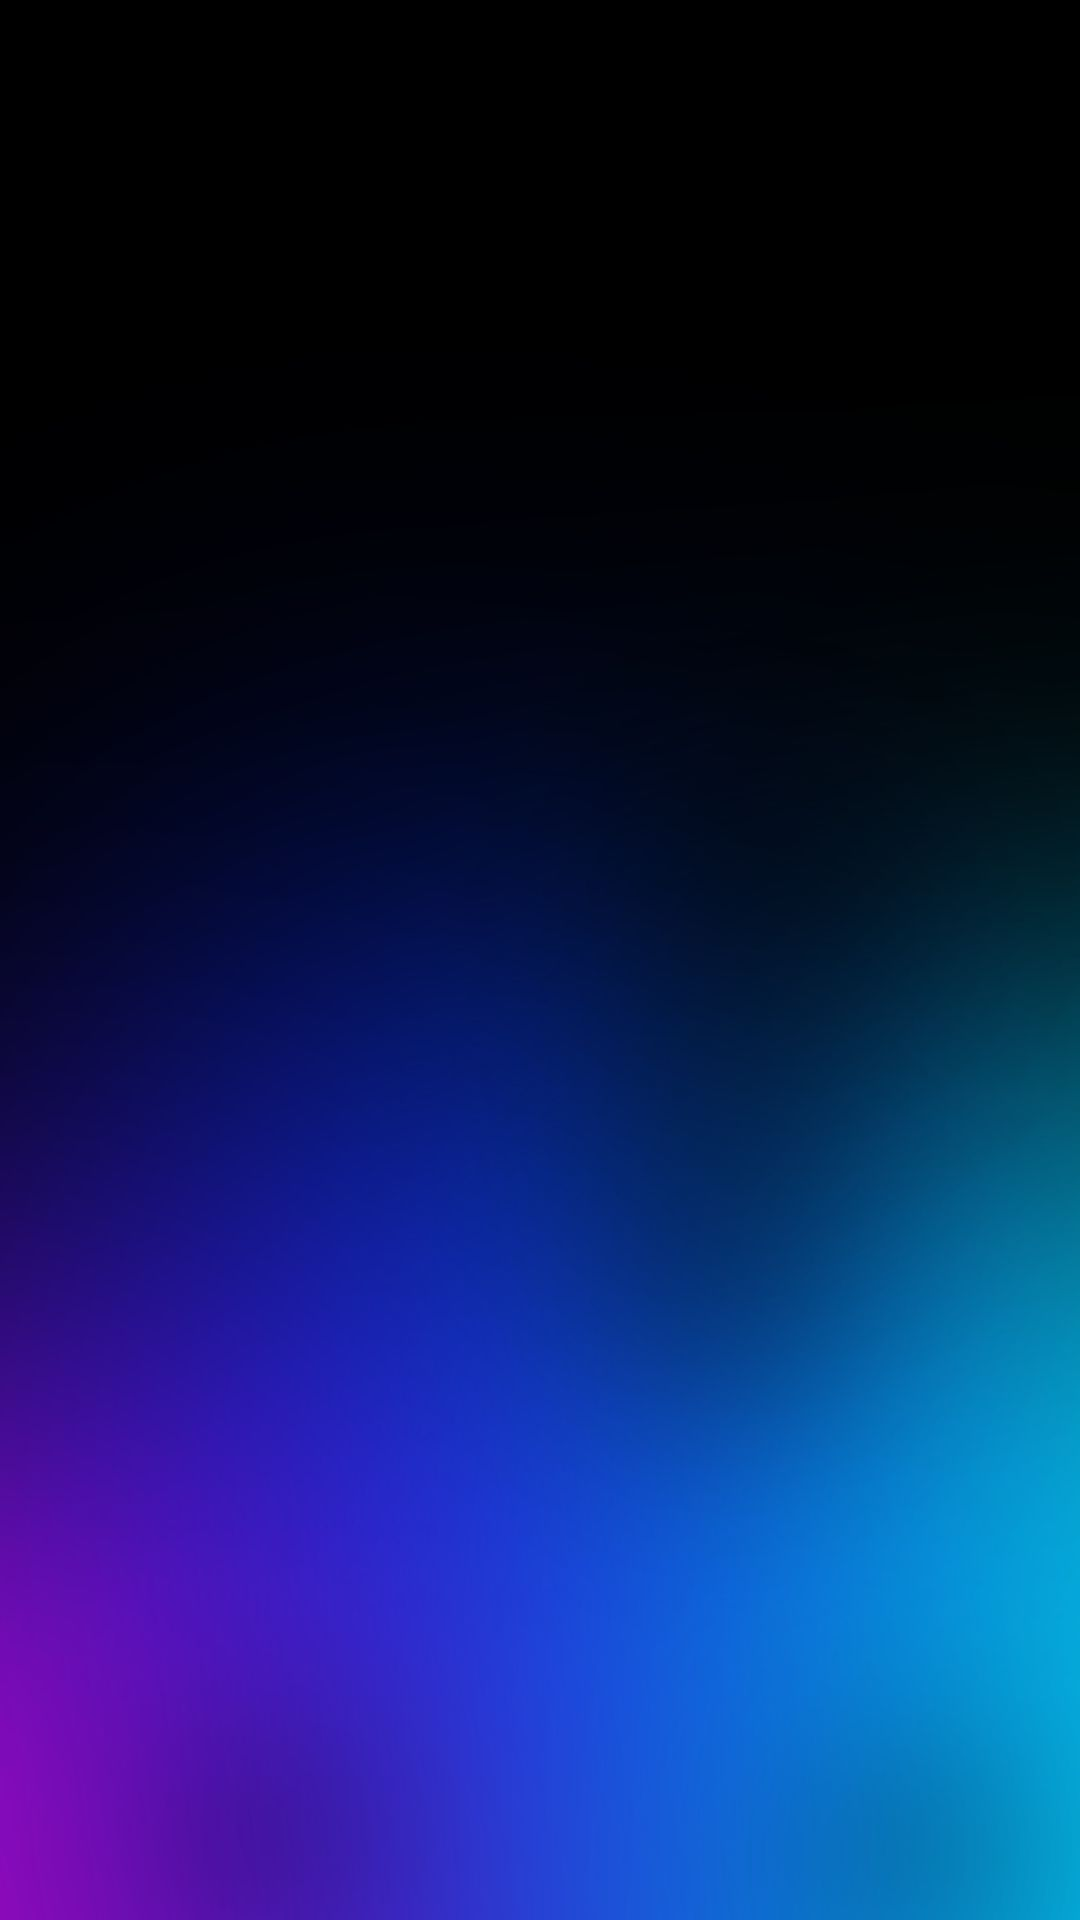 Dark Blue Gradient Iphone Wallpaper Dark Blue Wallpaper Iphone Wallpaper Gradient Blue Wallpaper Iphone